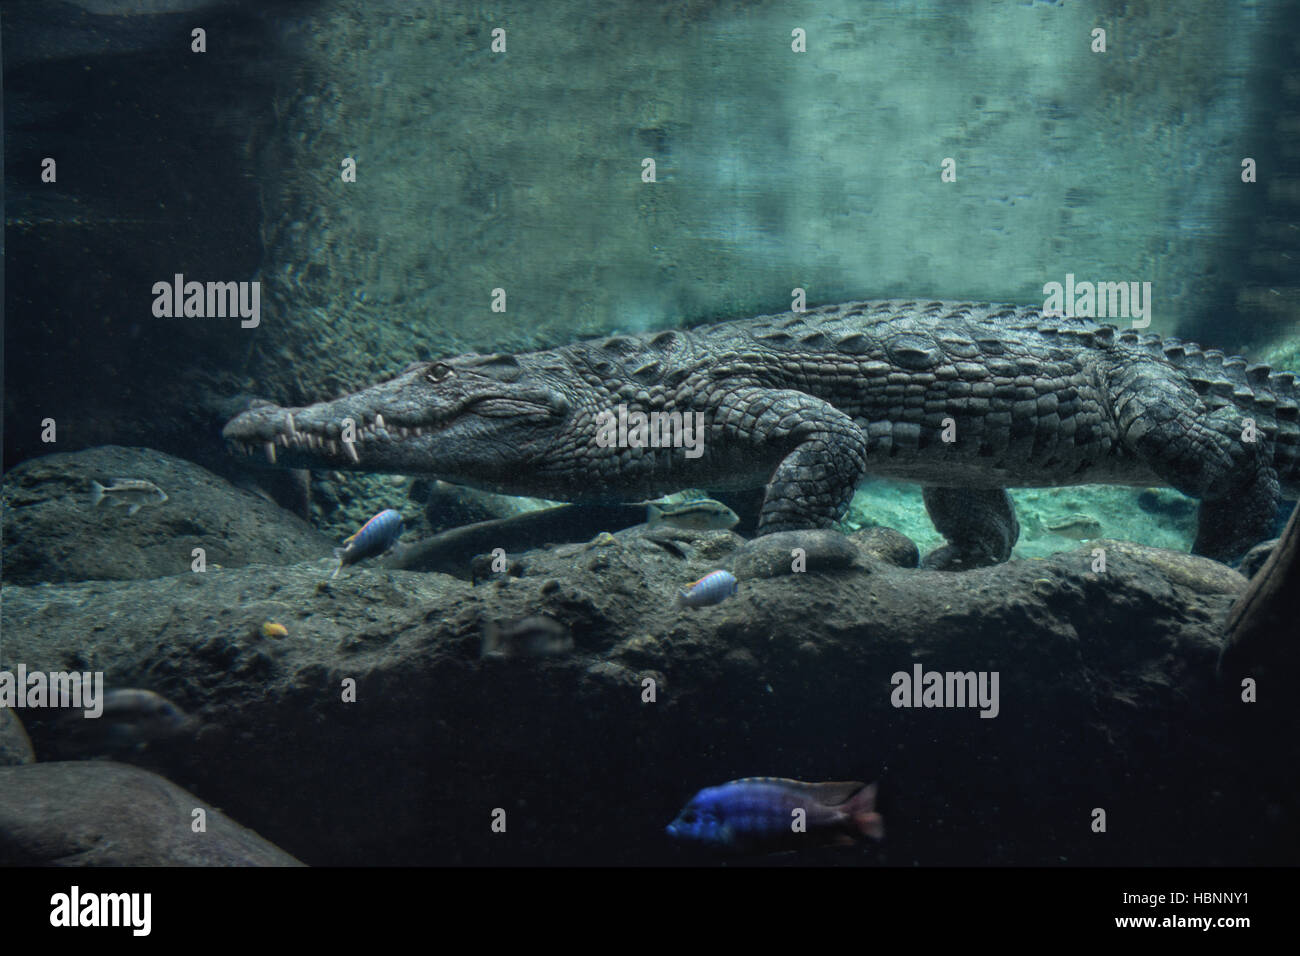 the croc under water - Stock Image